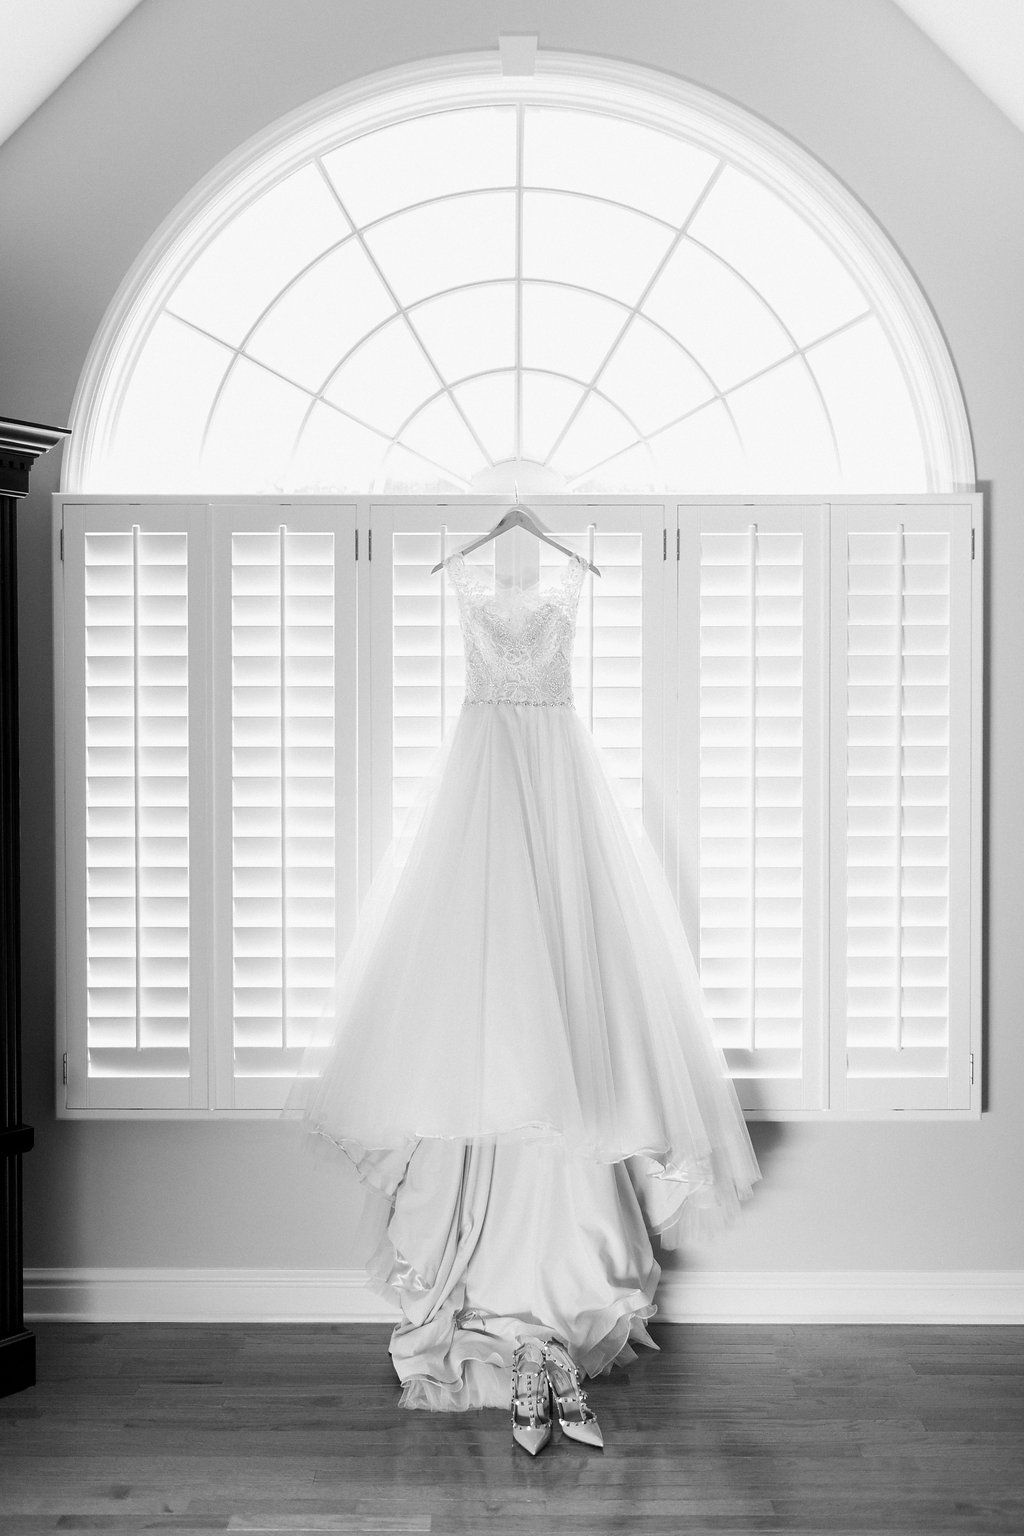 Wedding dresses pittsburgh  The Club at Nevillewood Wedding Photography Pittsburgh  Lauren